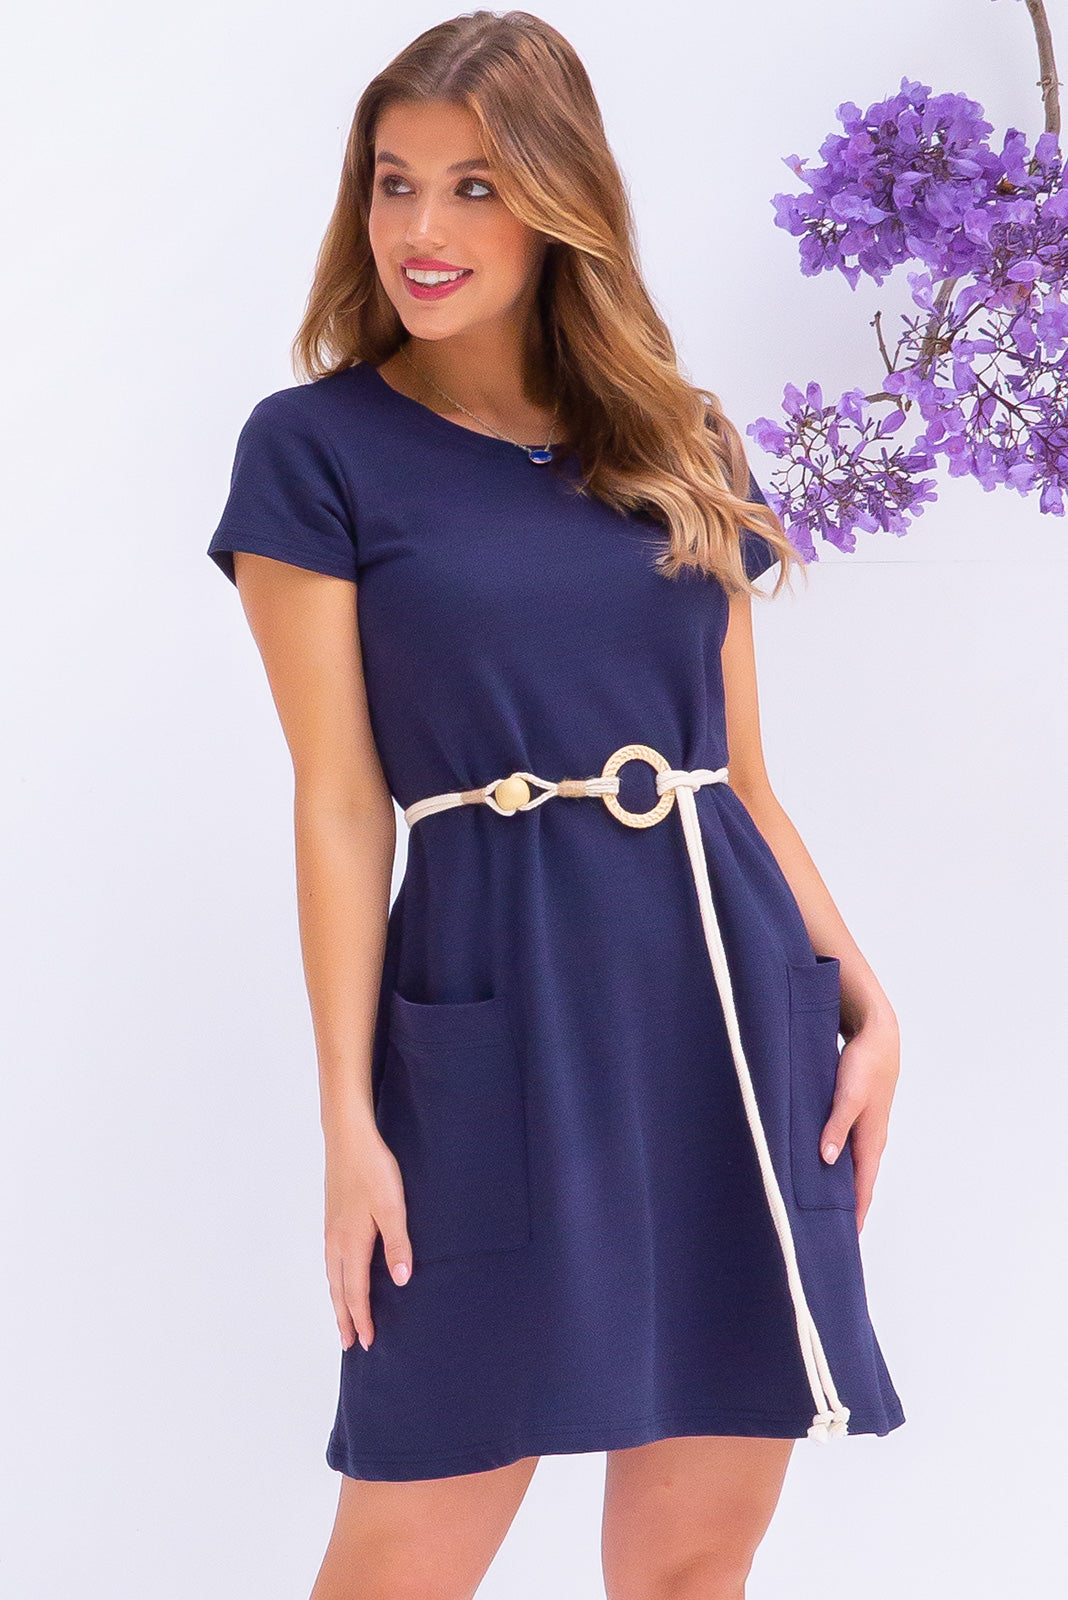 Elsa Nautical Navy Dress sportluxe shift mini dress in cotton/polyester blend with pockets.